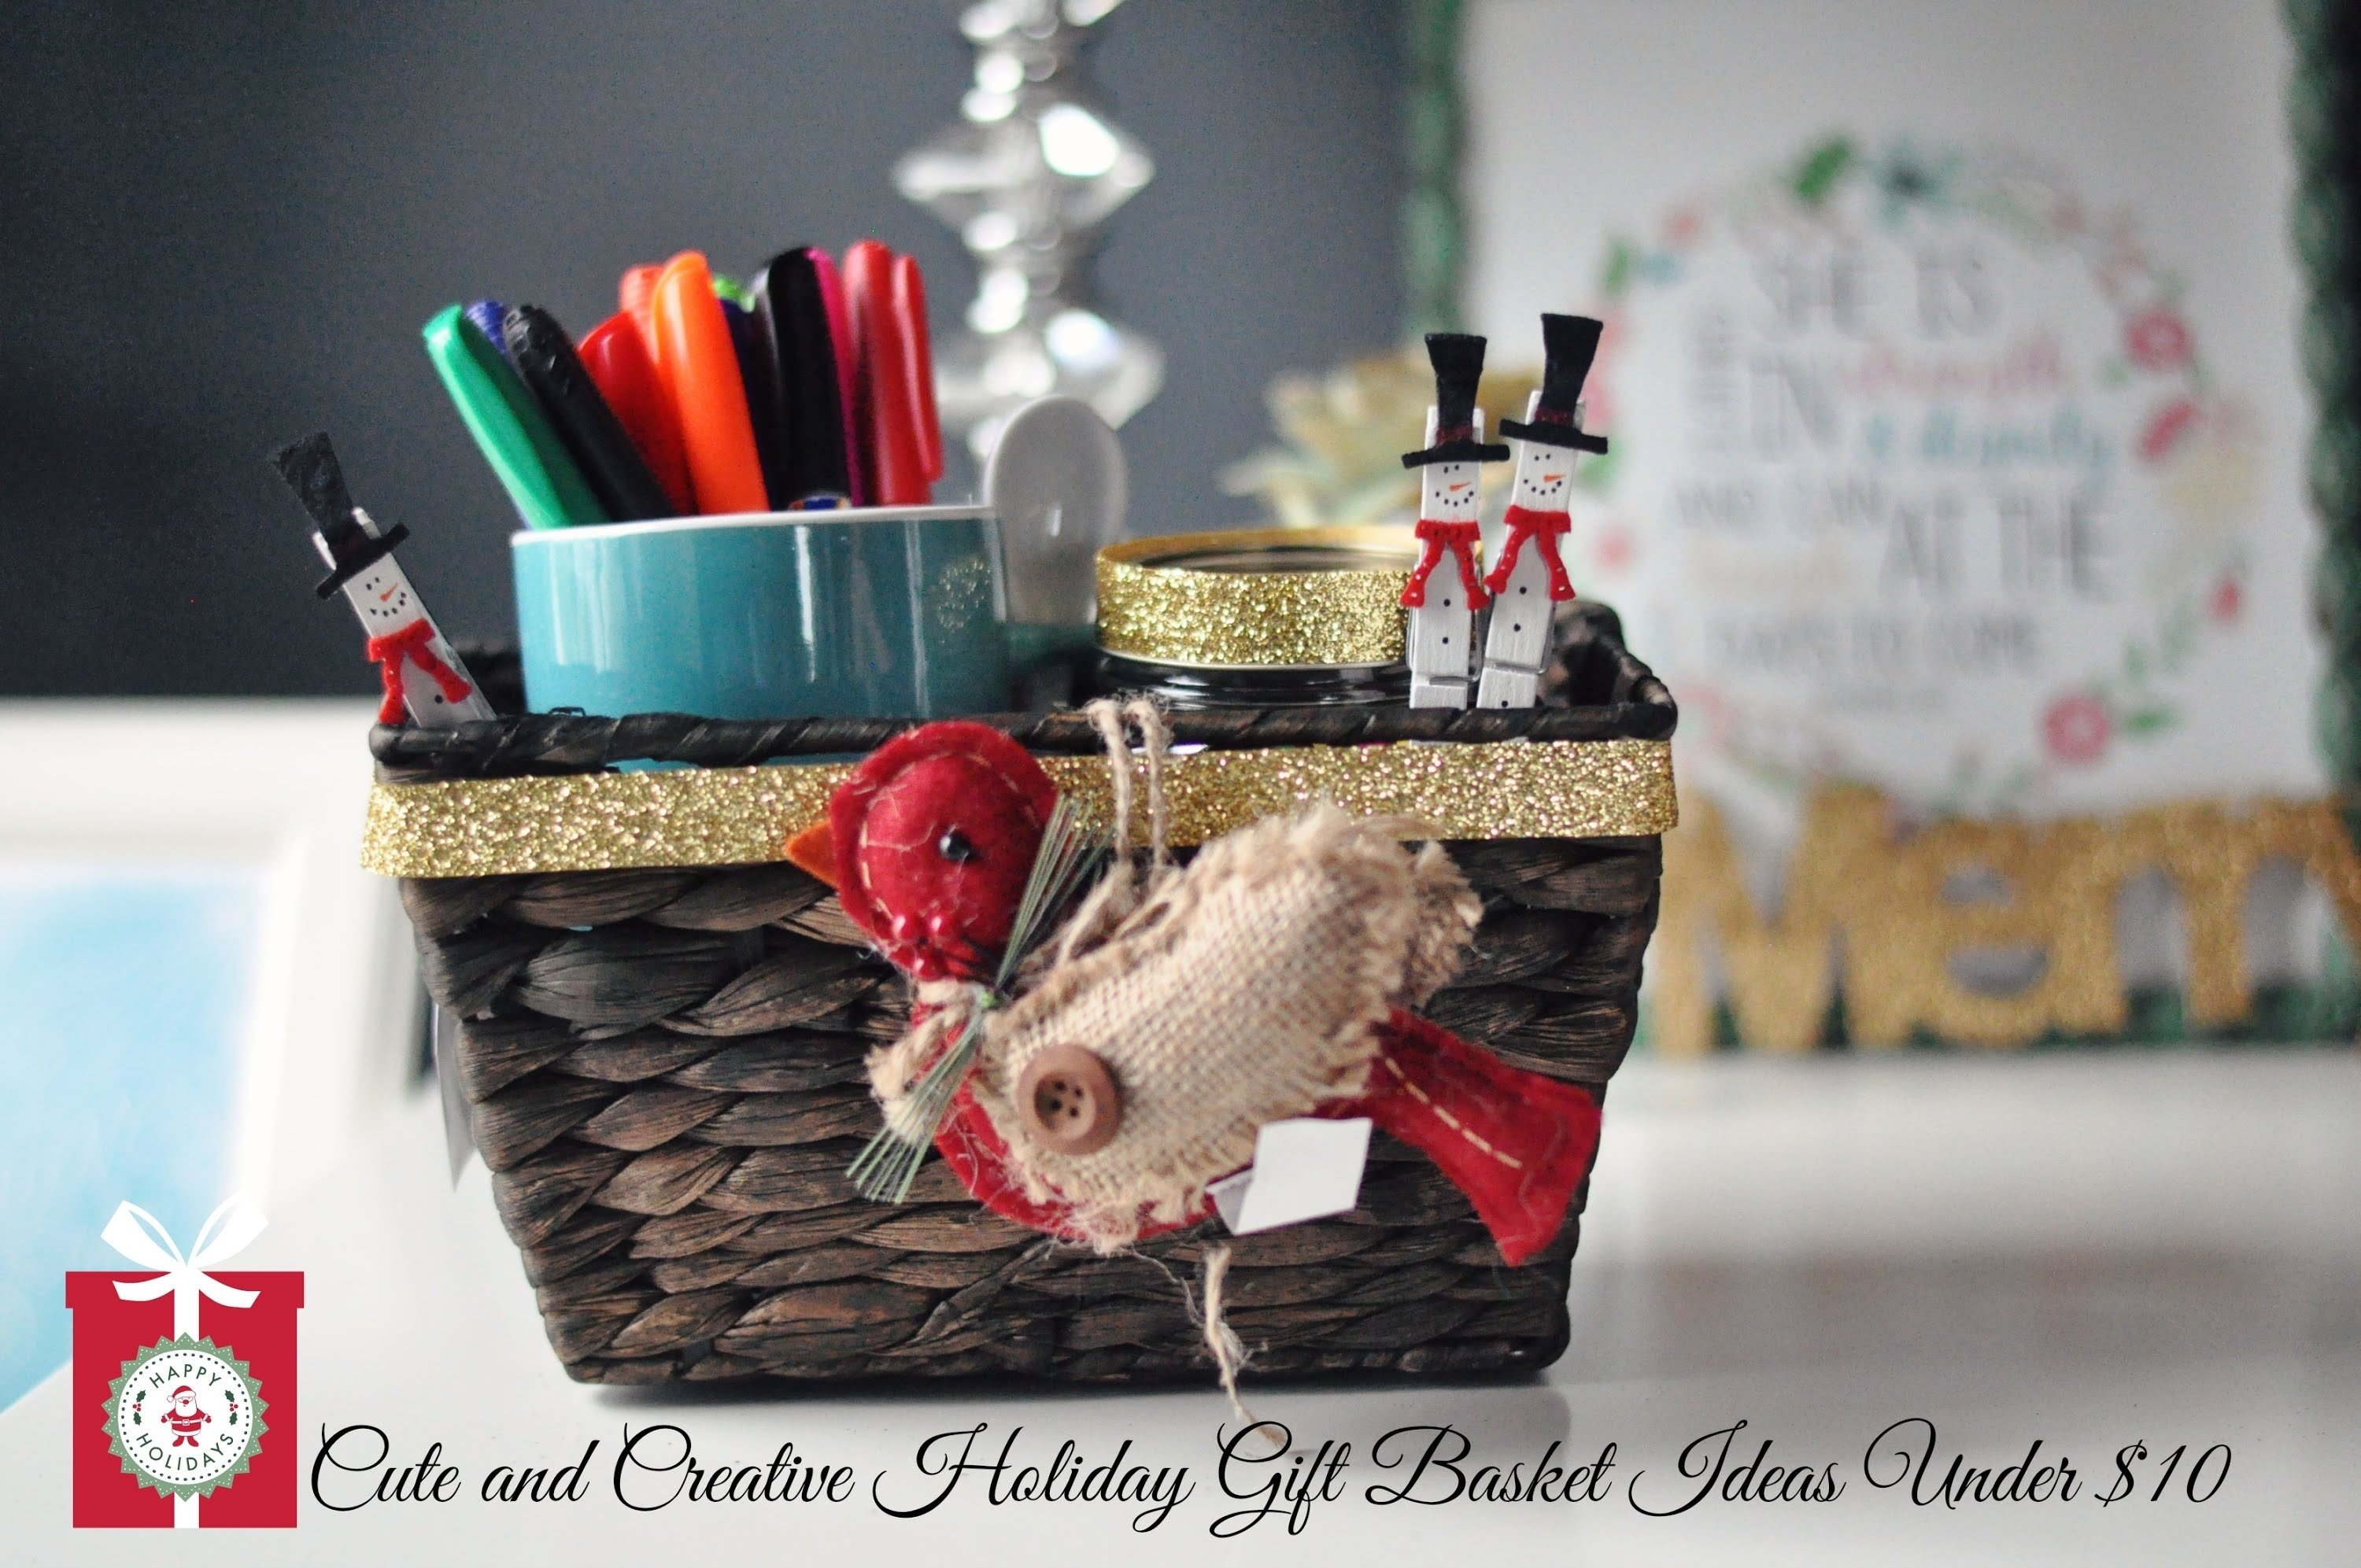 10 Great Homemade Holiday Gift Basket Ideas diy christmas gifts cute creative holiday gift baskets for under 2 2020